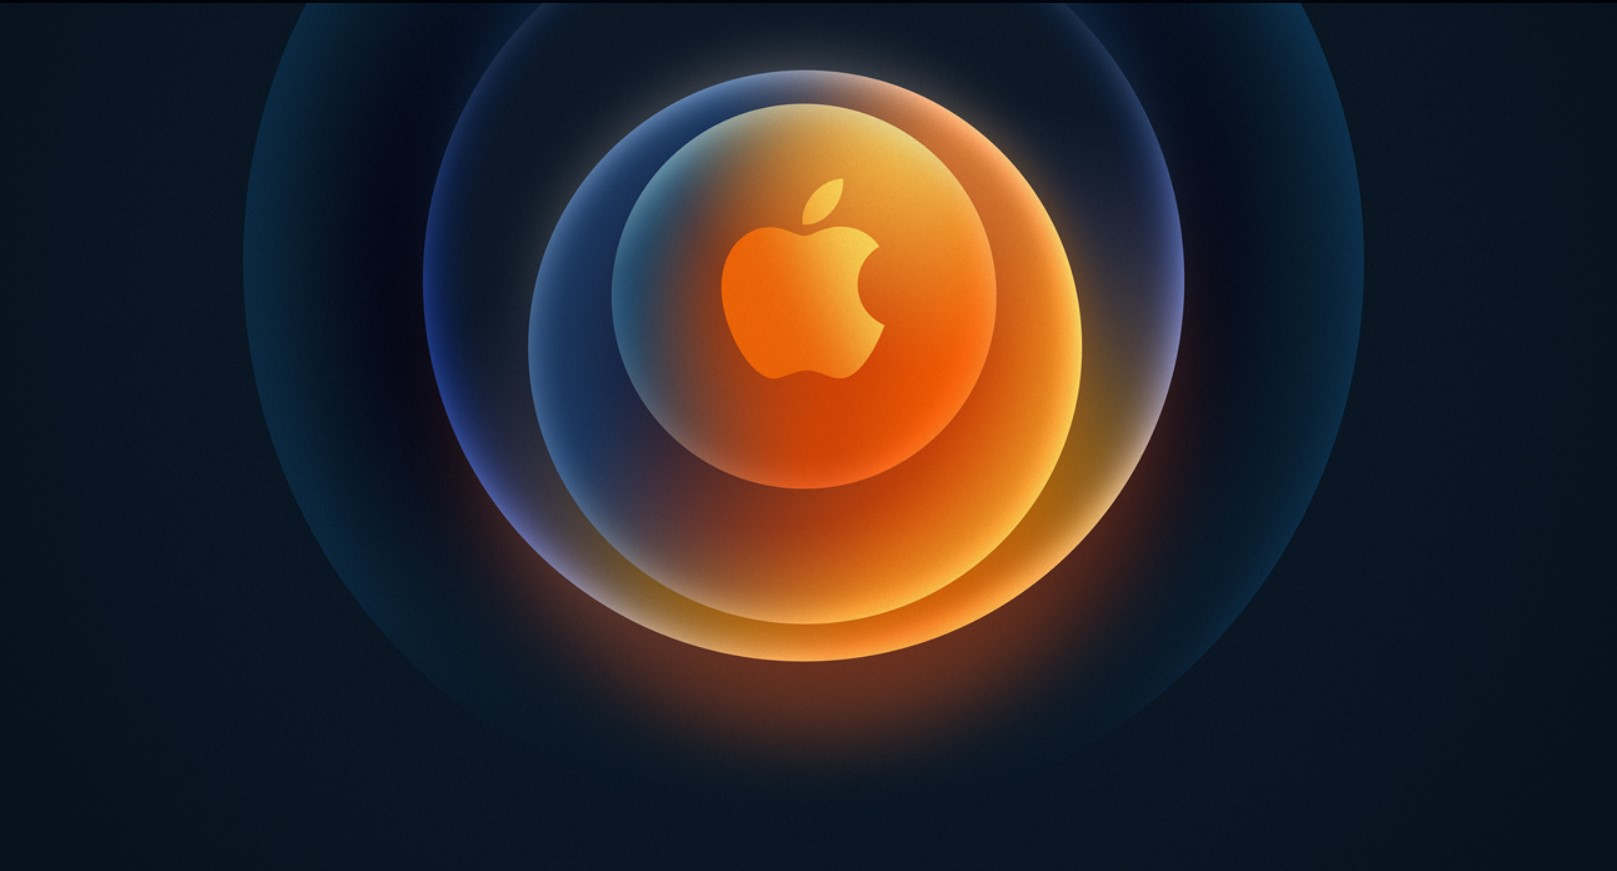 Download Iphone 12 Wallpapers Apple Event 2020 Wallpapers Iphone 12 Mini Pro Max